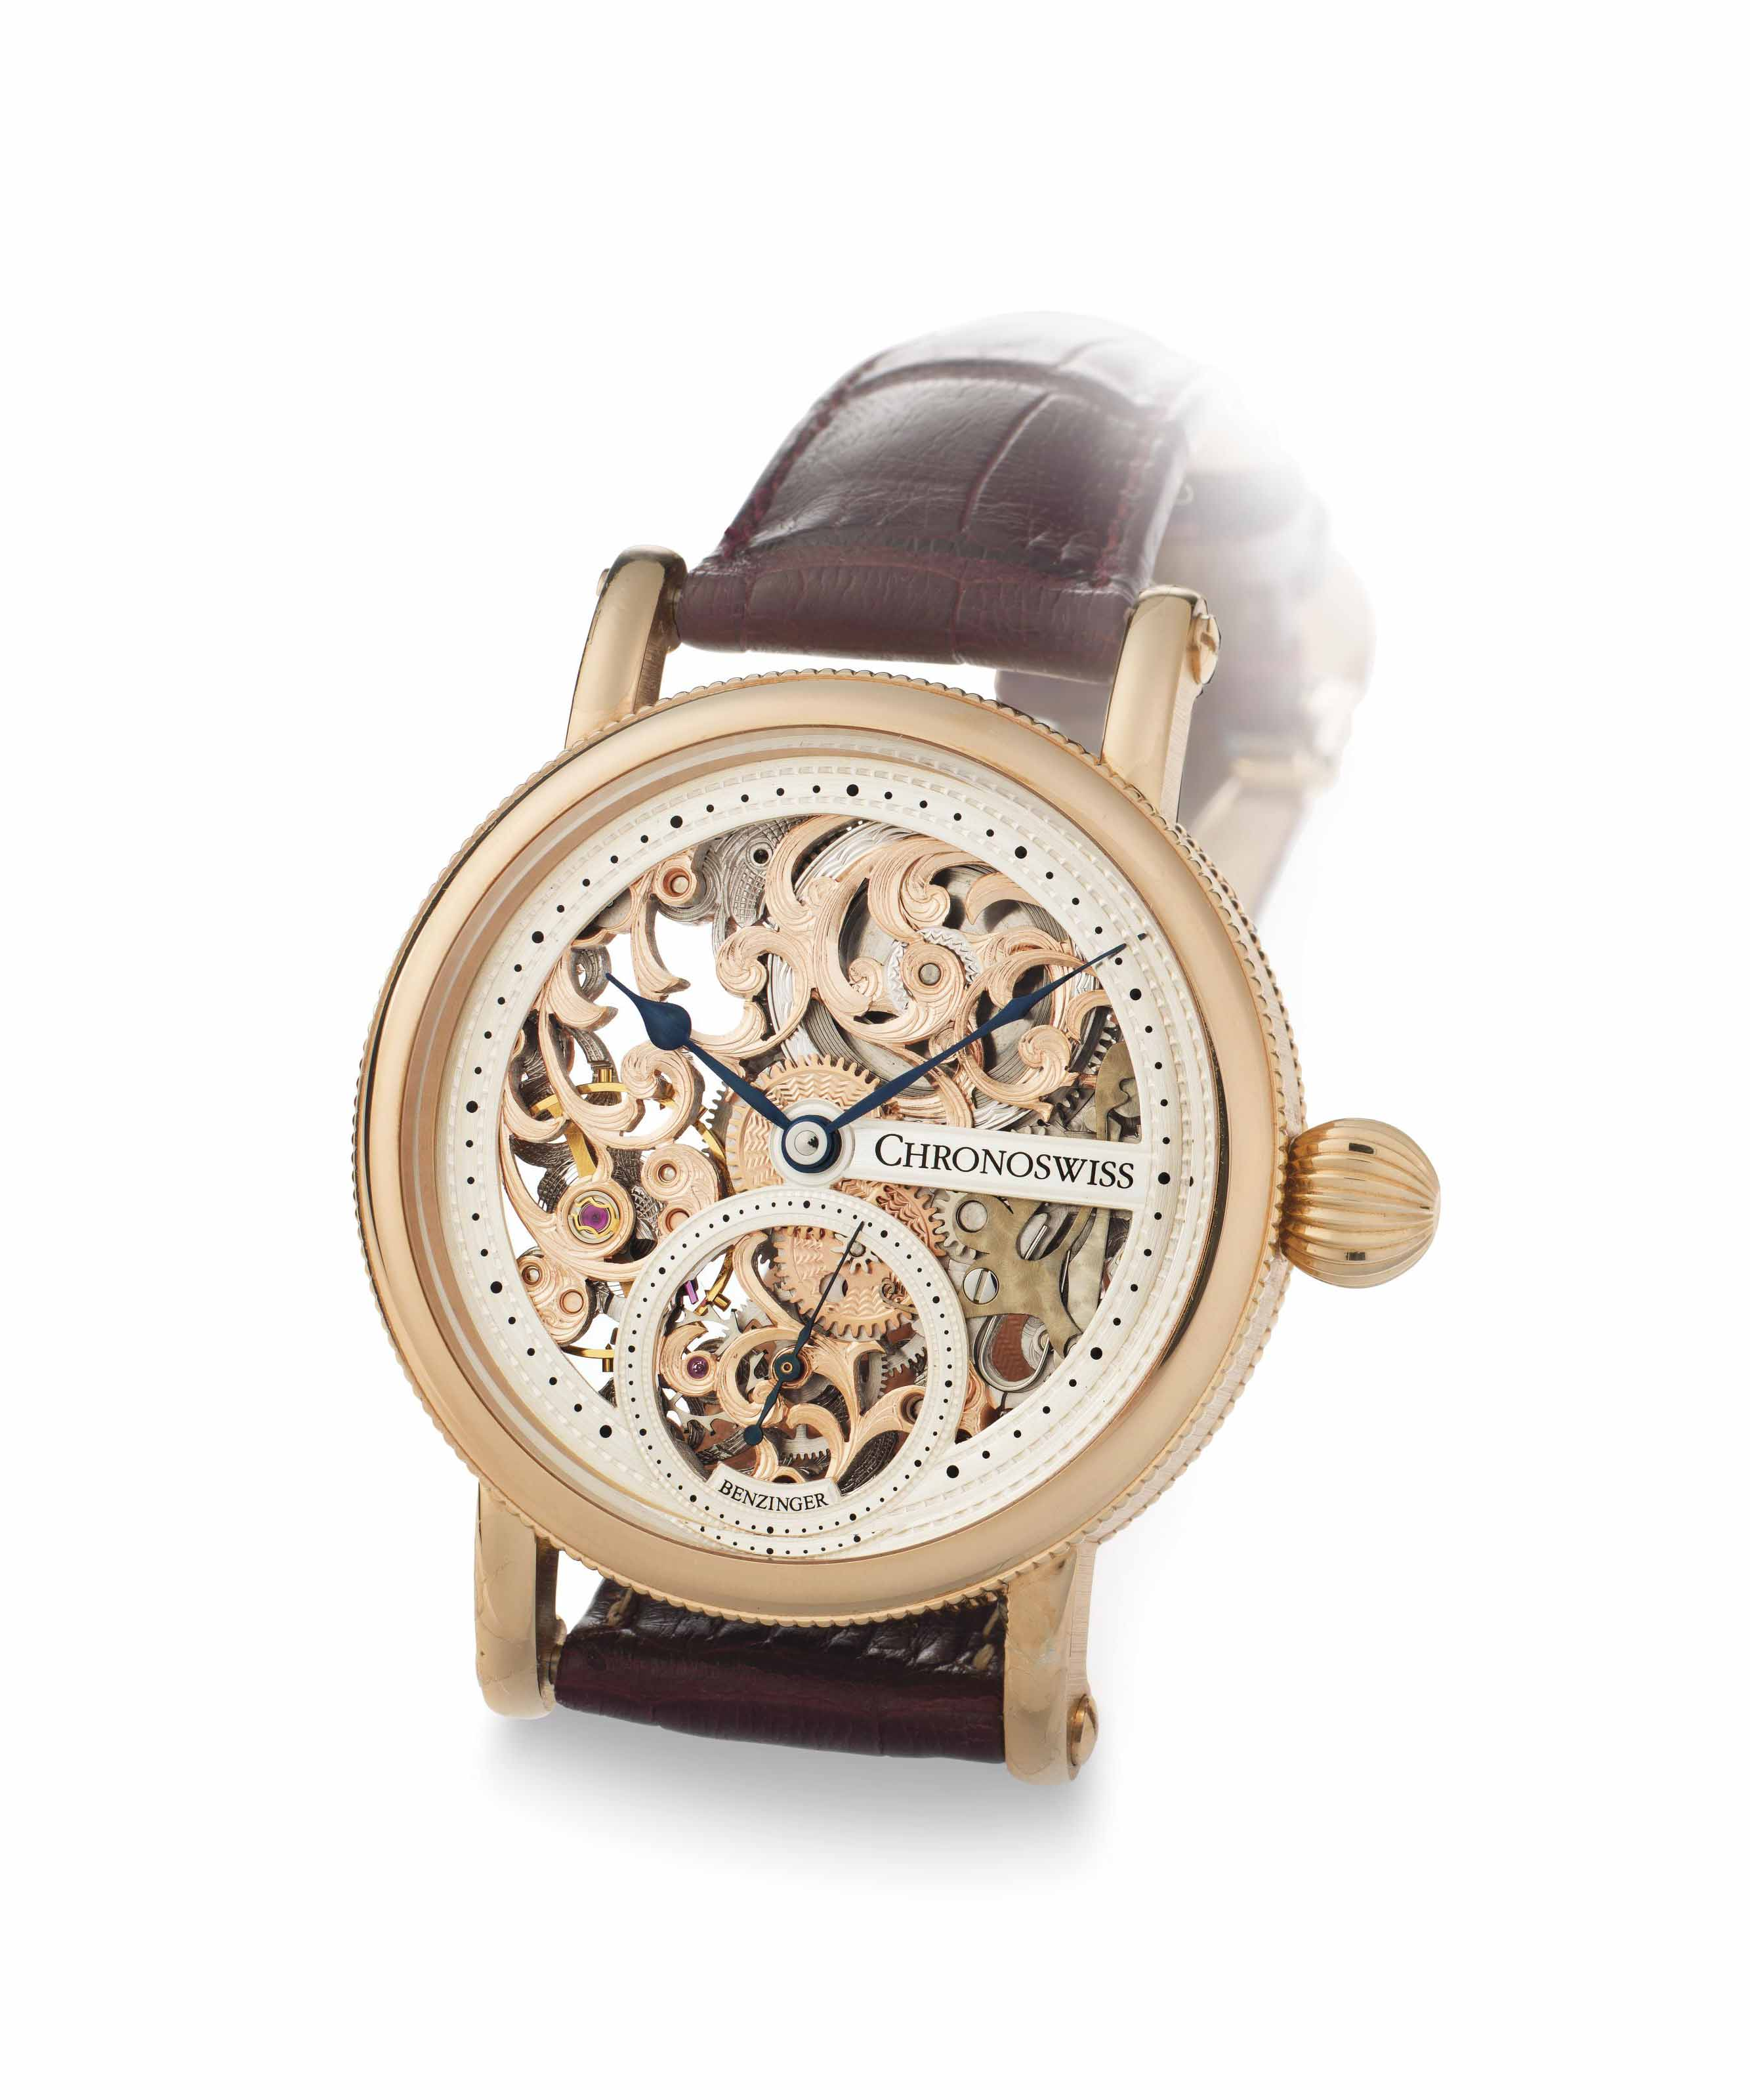 Chronoswiss. A Fine Limited Edition 18k Pink Gold Skeletonized Wristwatch